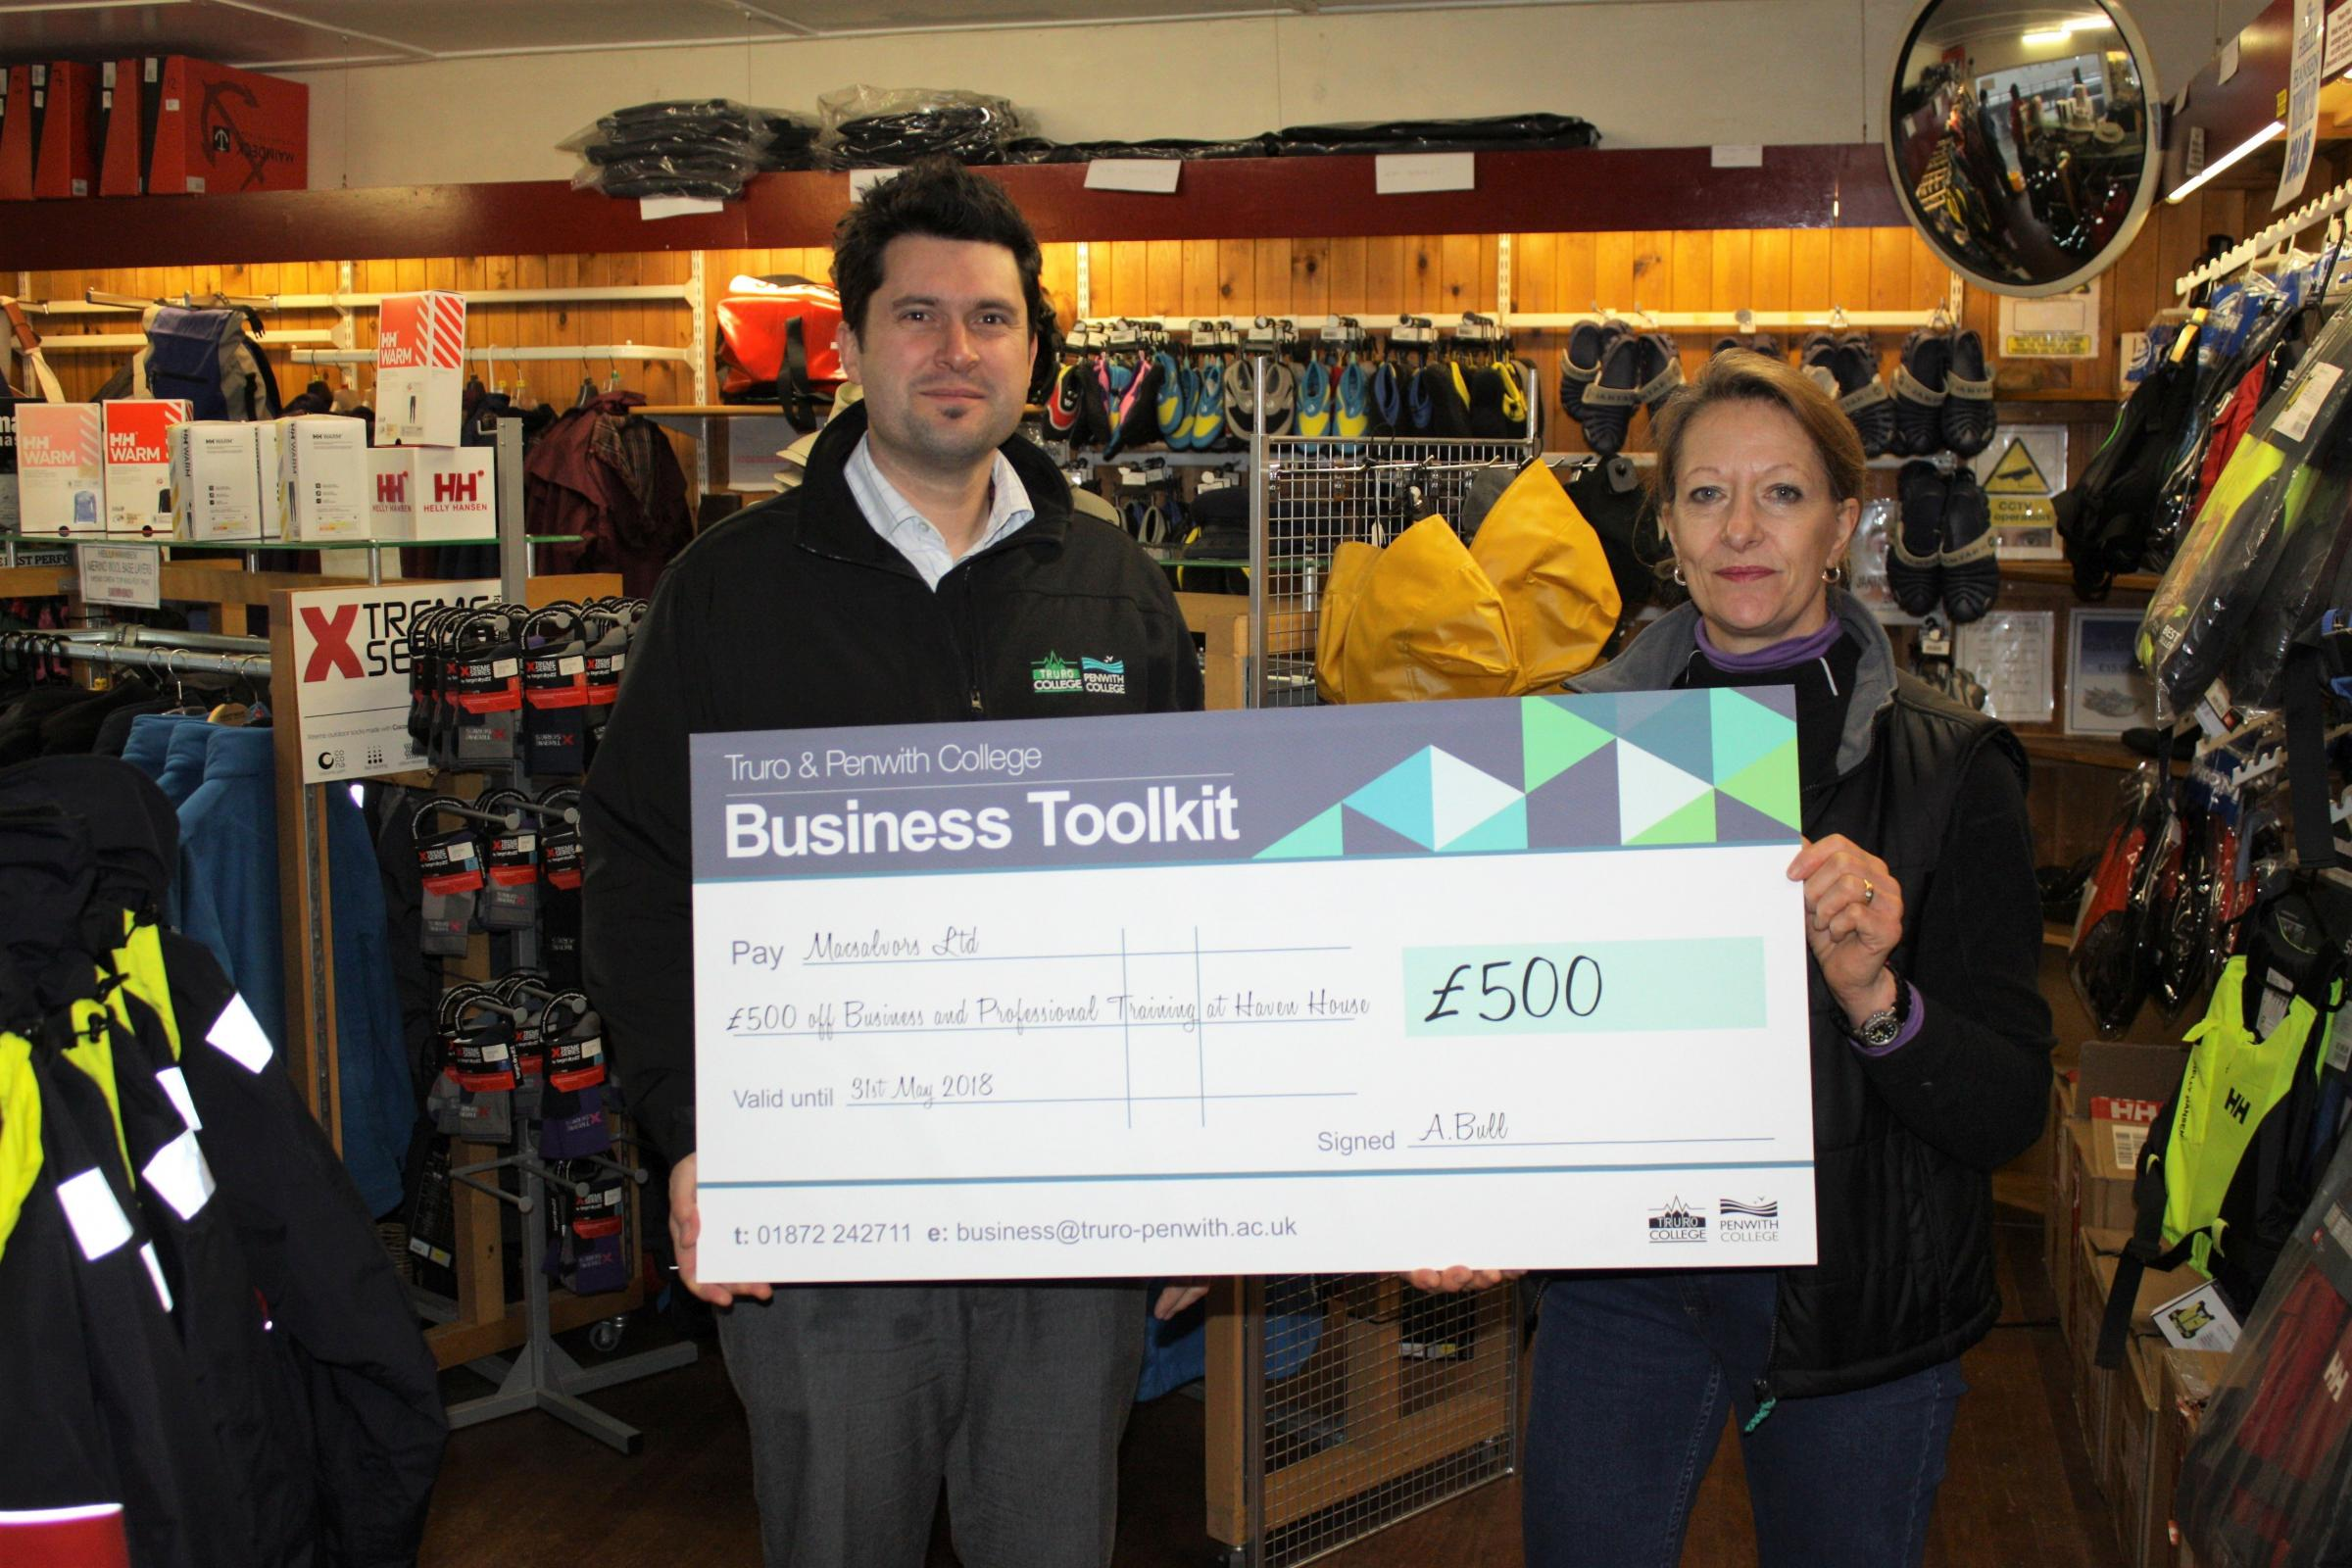 James Bemrose, BDA from the college handing over the £500 cheque to store manager Sally Bazley